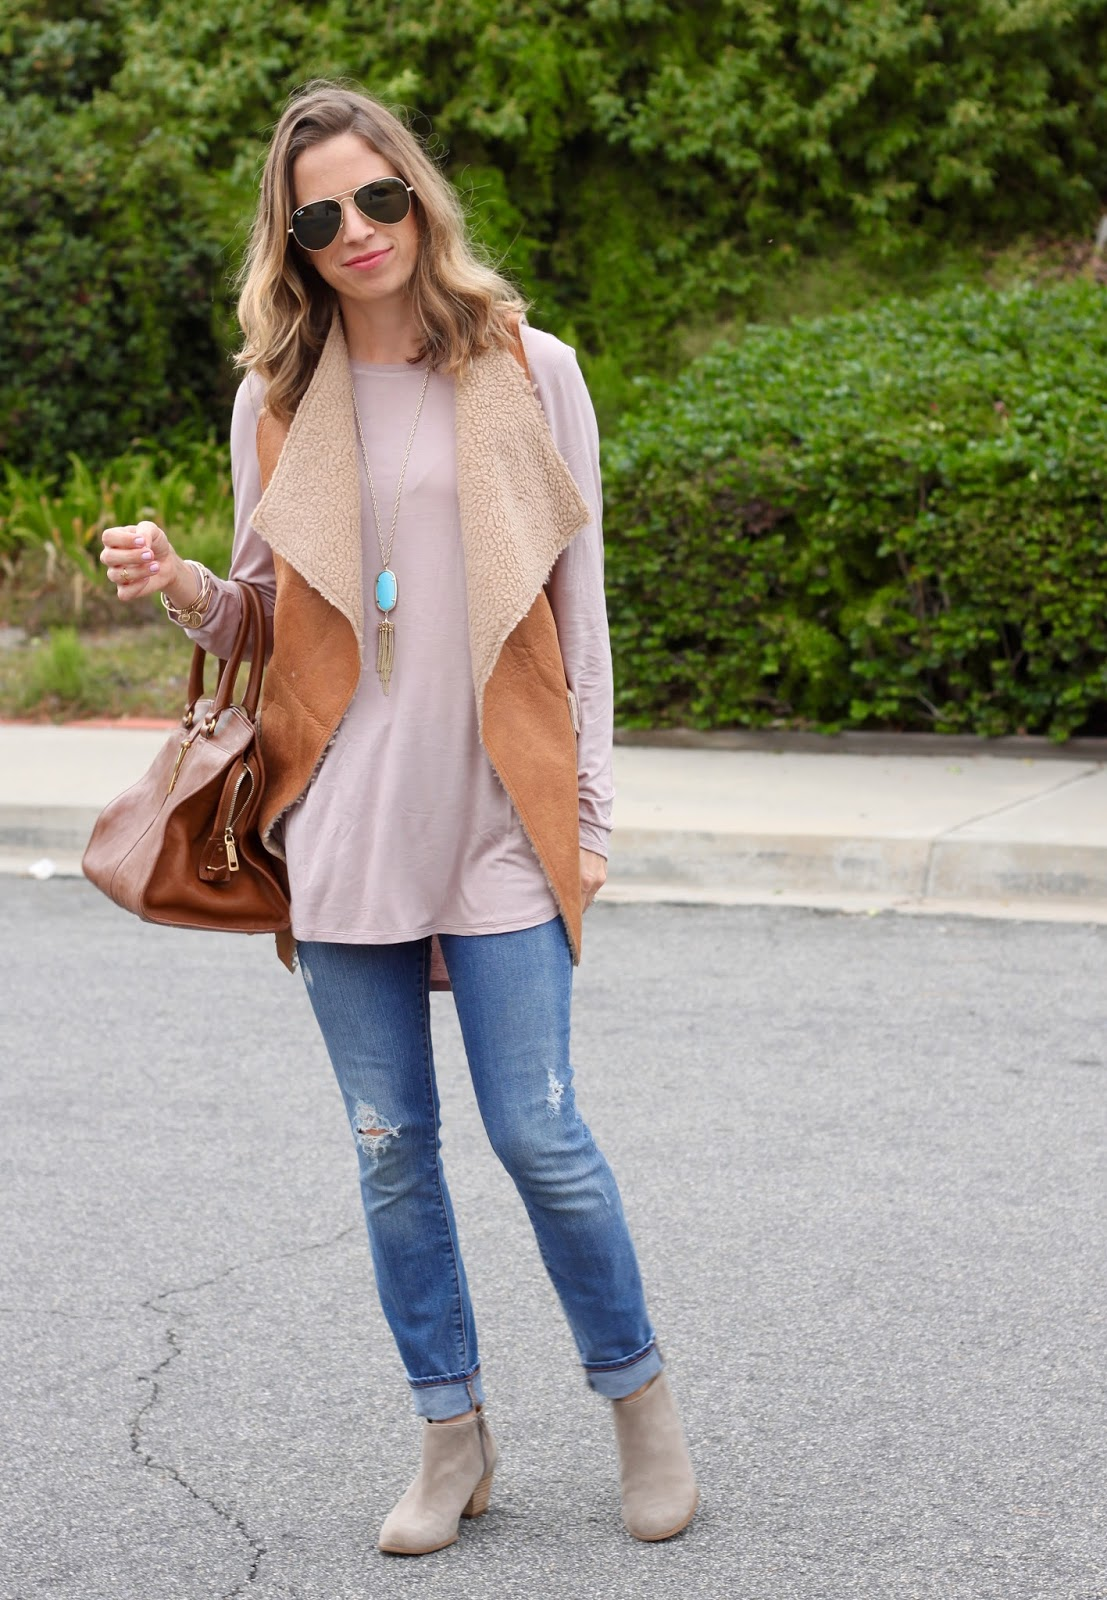 shearling vest and tunic